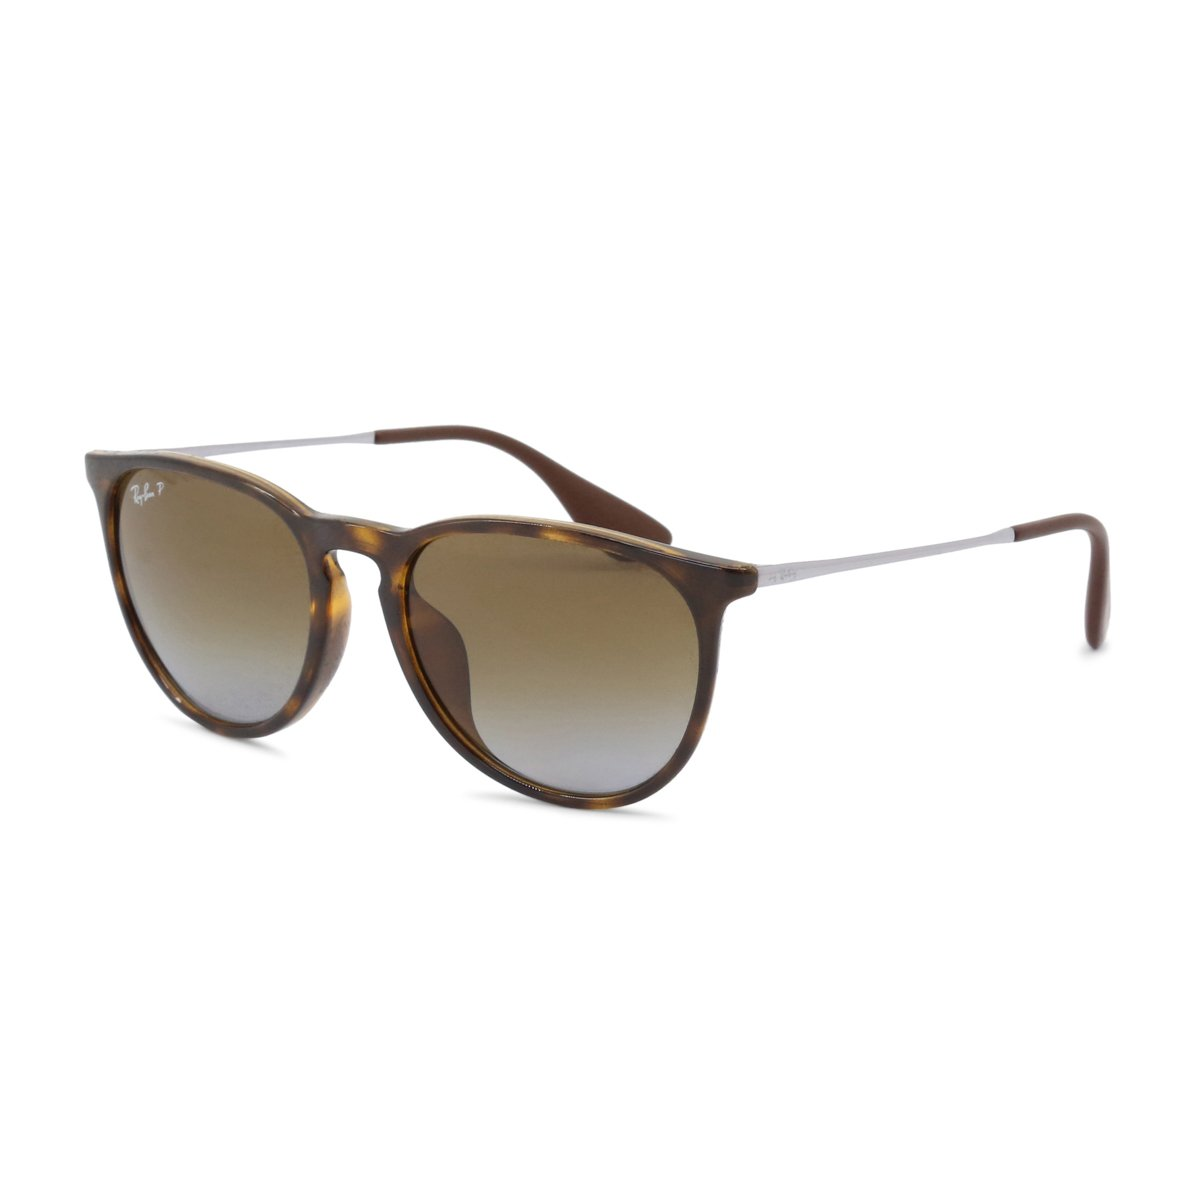 Ray-Ban Unisex Sunglasses Various Colours 0RB4171F - brown-1 NOSIZE